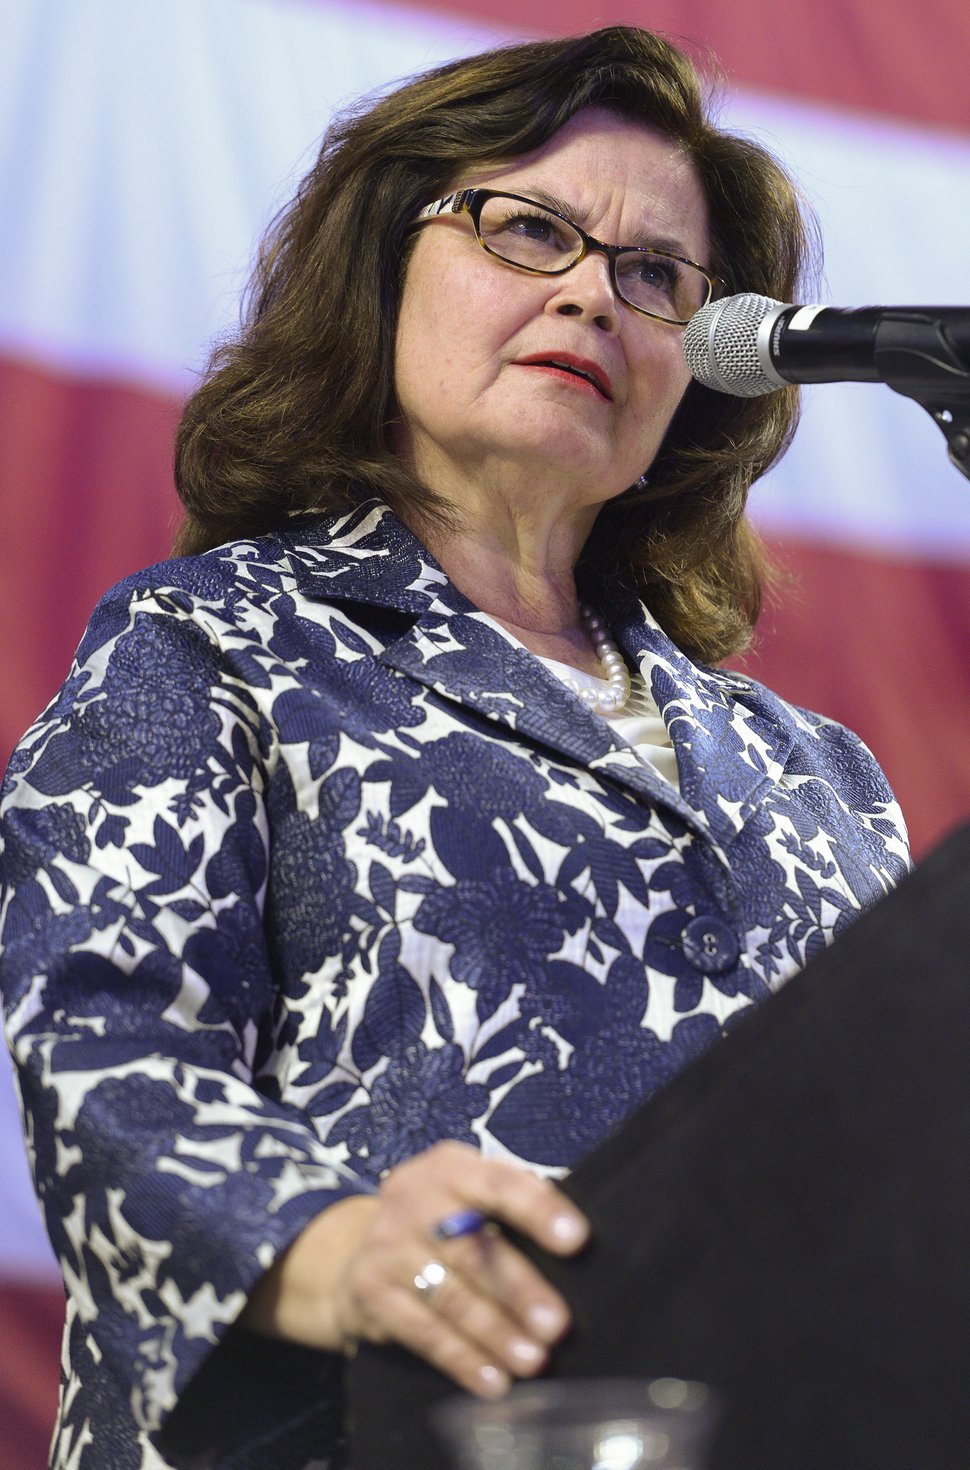 (Leah Hogsten | The Salt Lake Tribune) Convention chairwoman Enid Greene Mickelsen tries to maintain order with the raucous crowd at the Utah Republican Nominating Convention Saturday, April 21, 2018 at the Maverik Center.